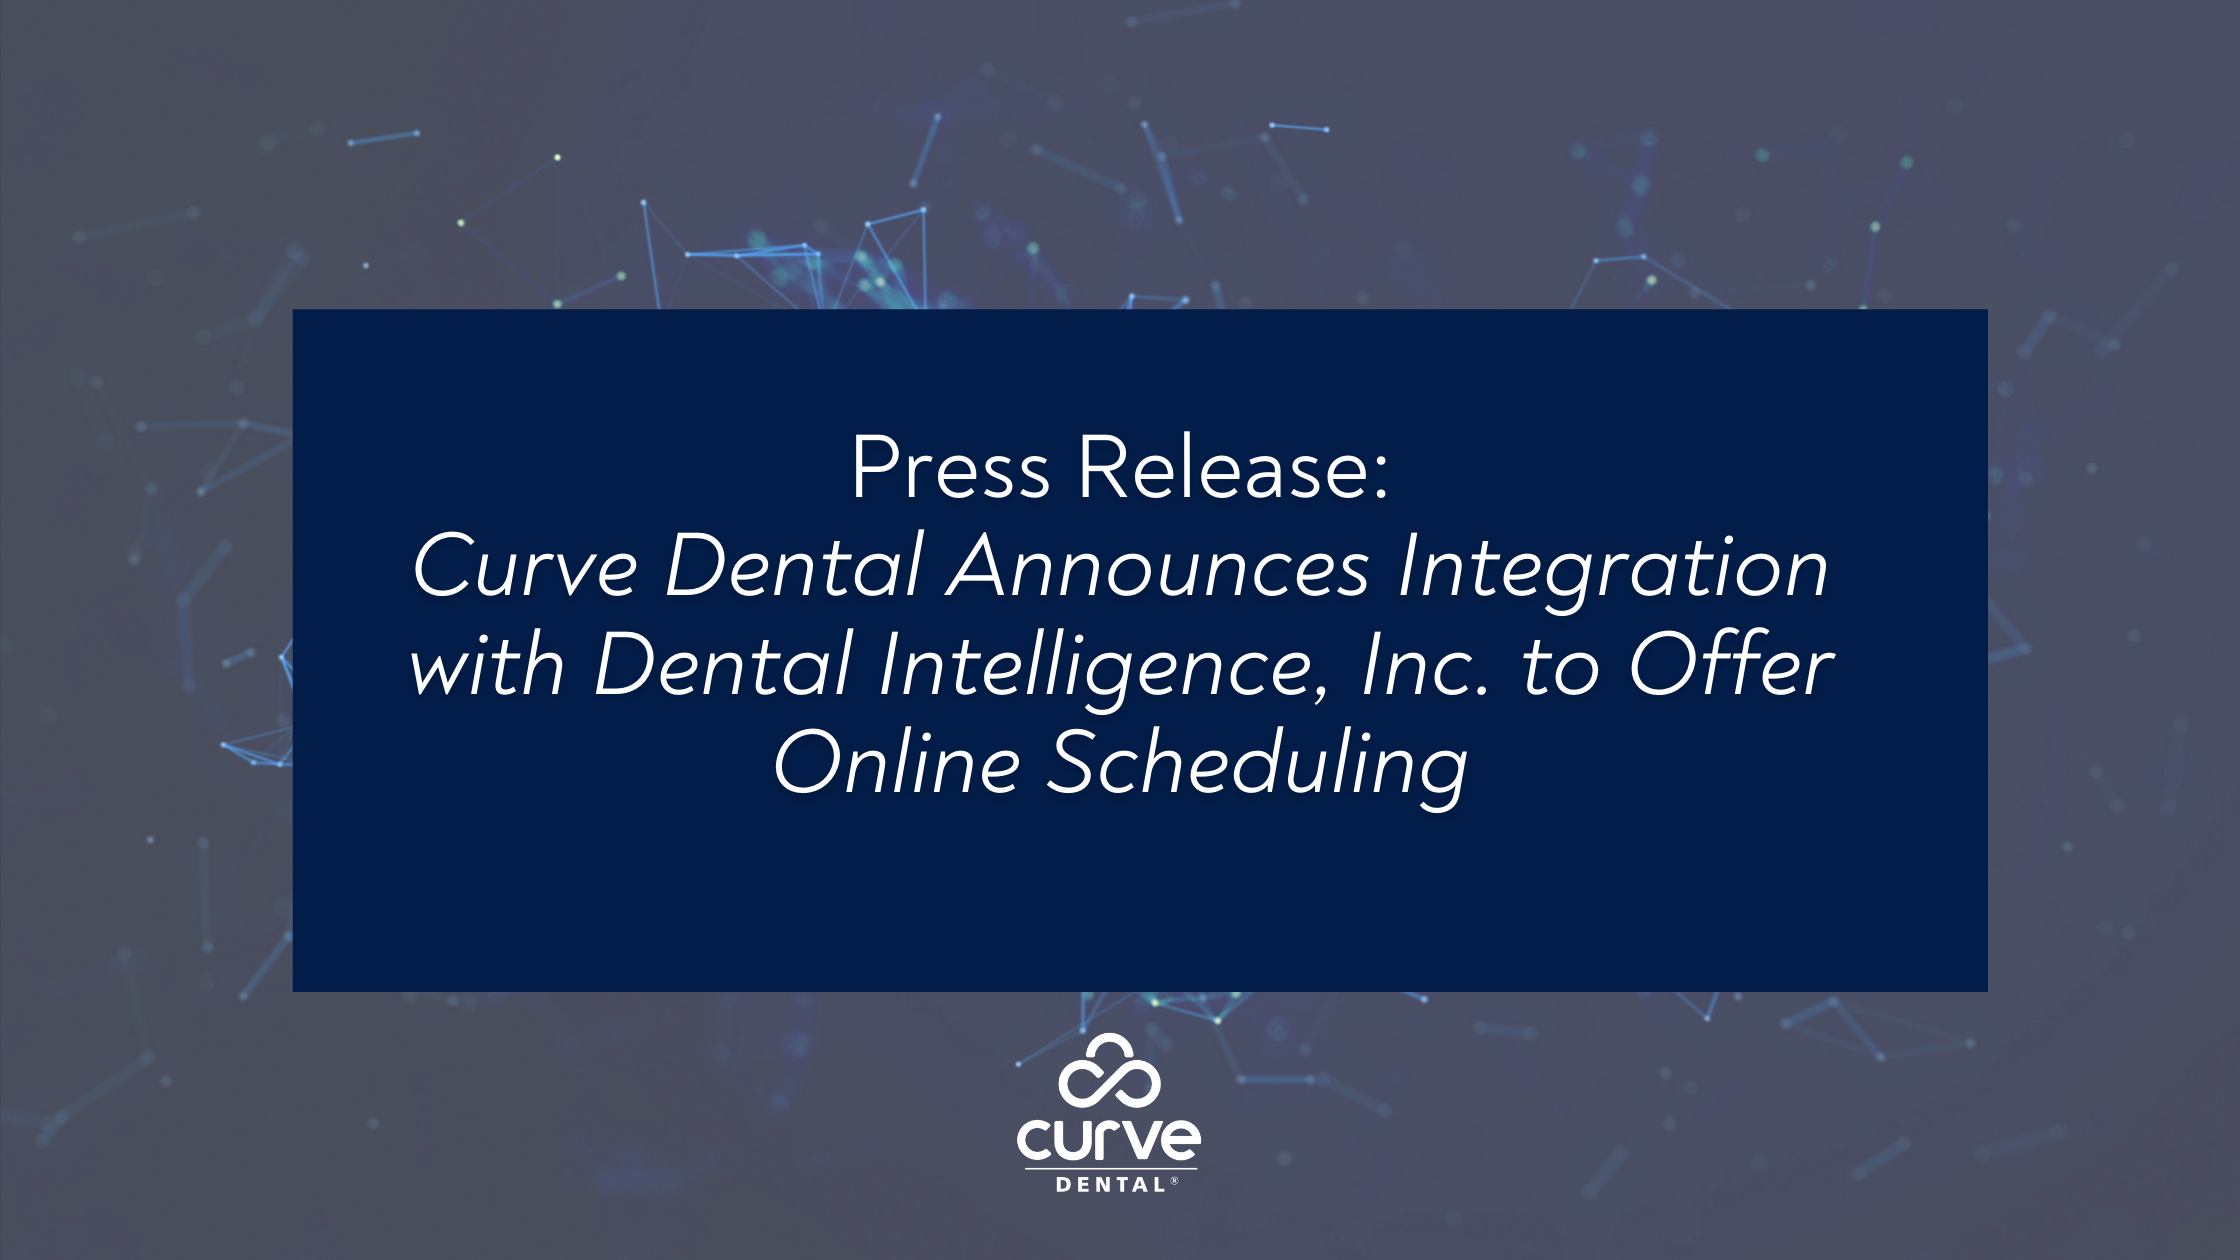 Press Release: Curve Dental Announces Integration with Dental Intelligence, Inc. to Offer Online Scheduling